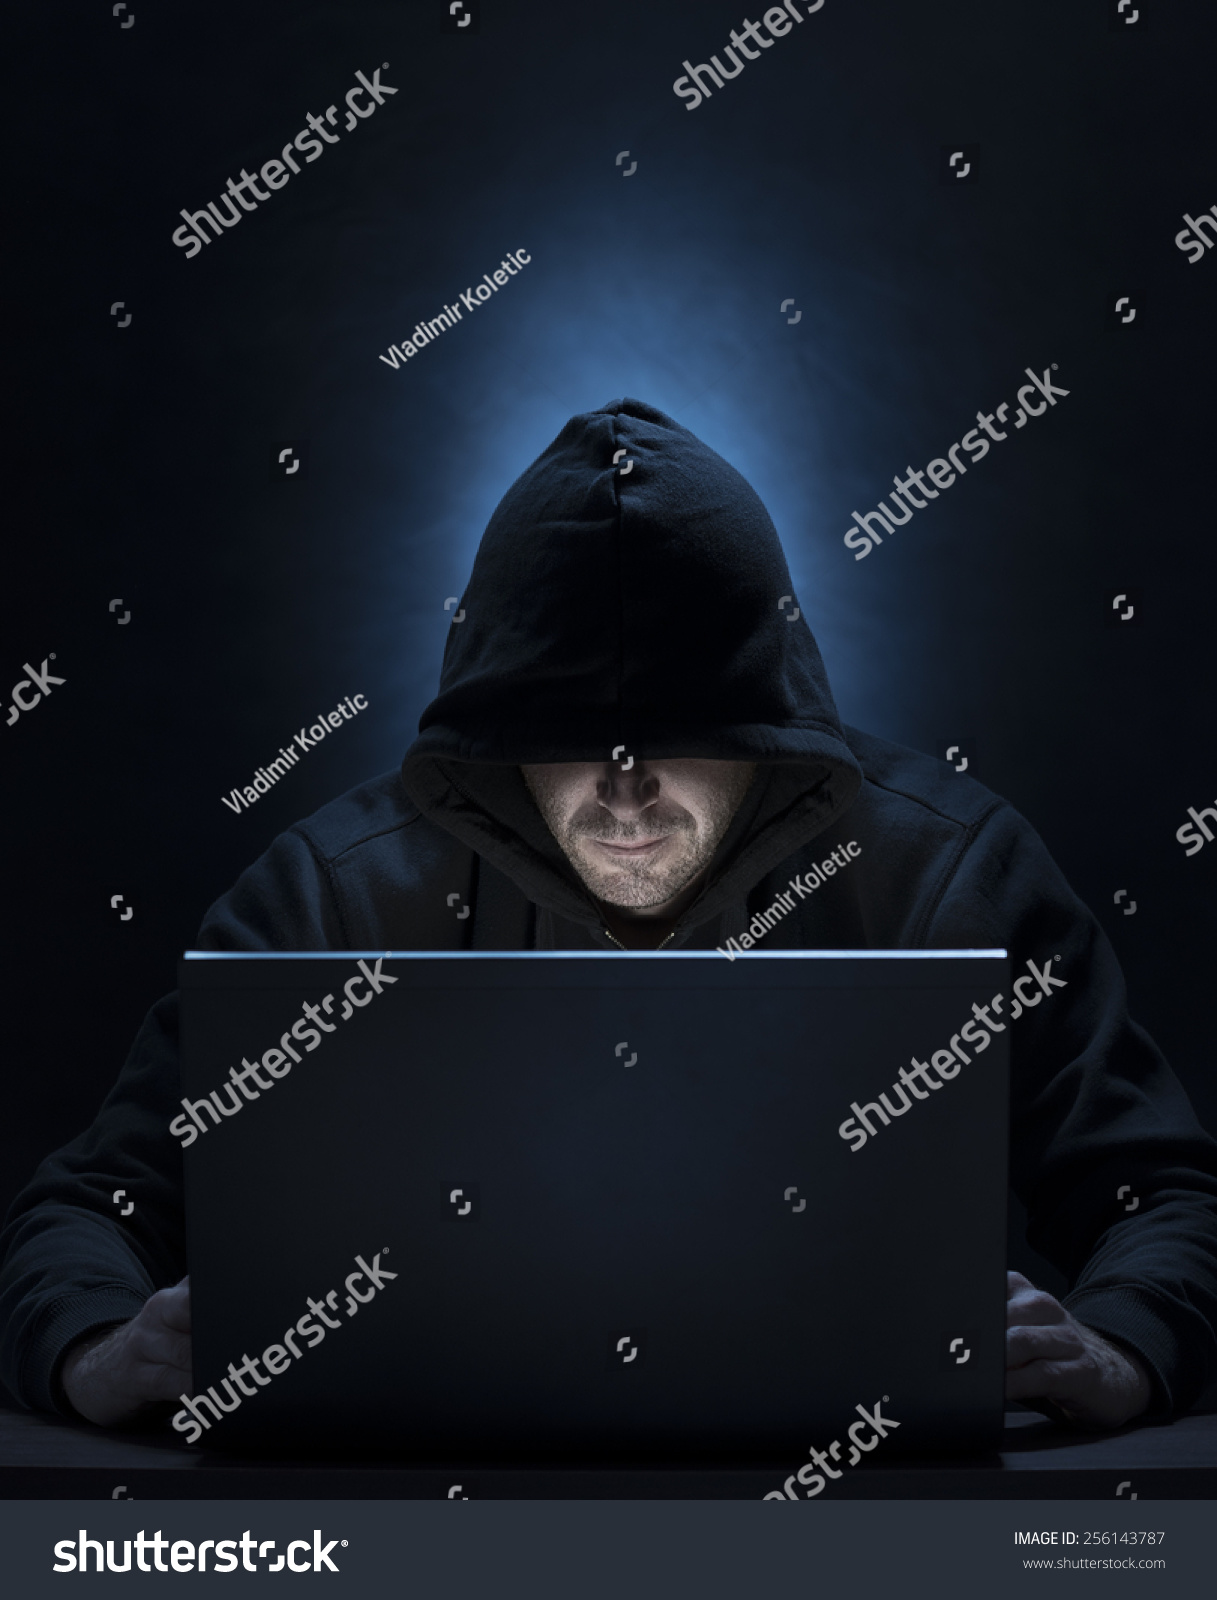 Hooded Man On Computer Hackingspyinginternet Security Stock Photo ...